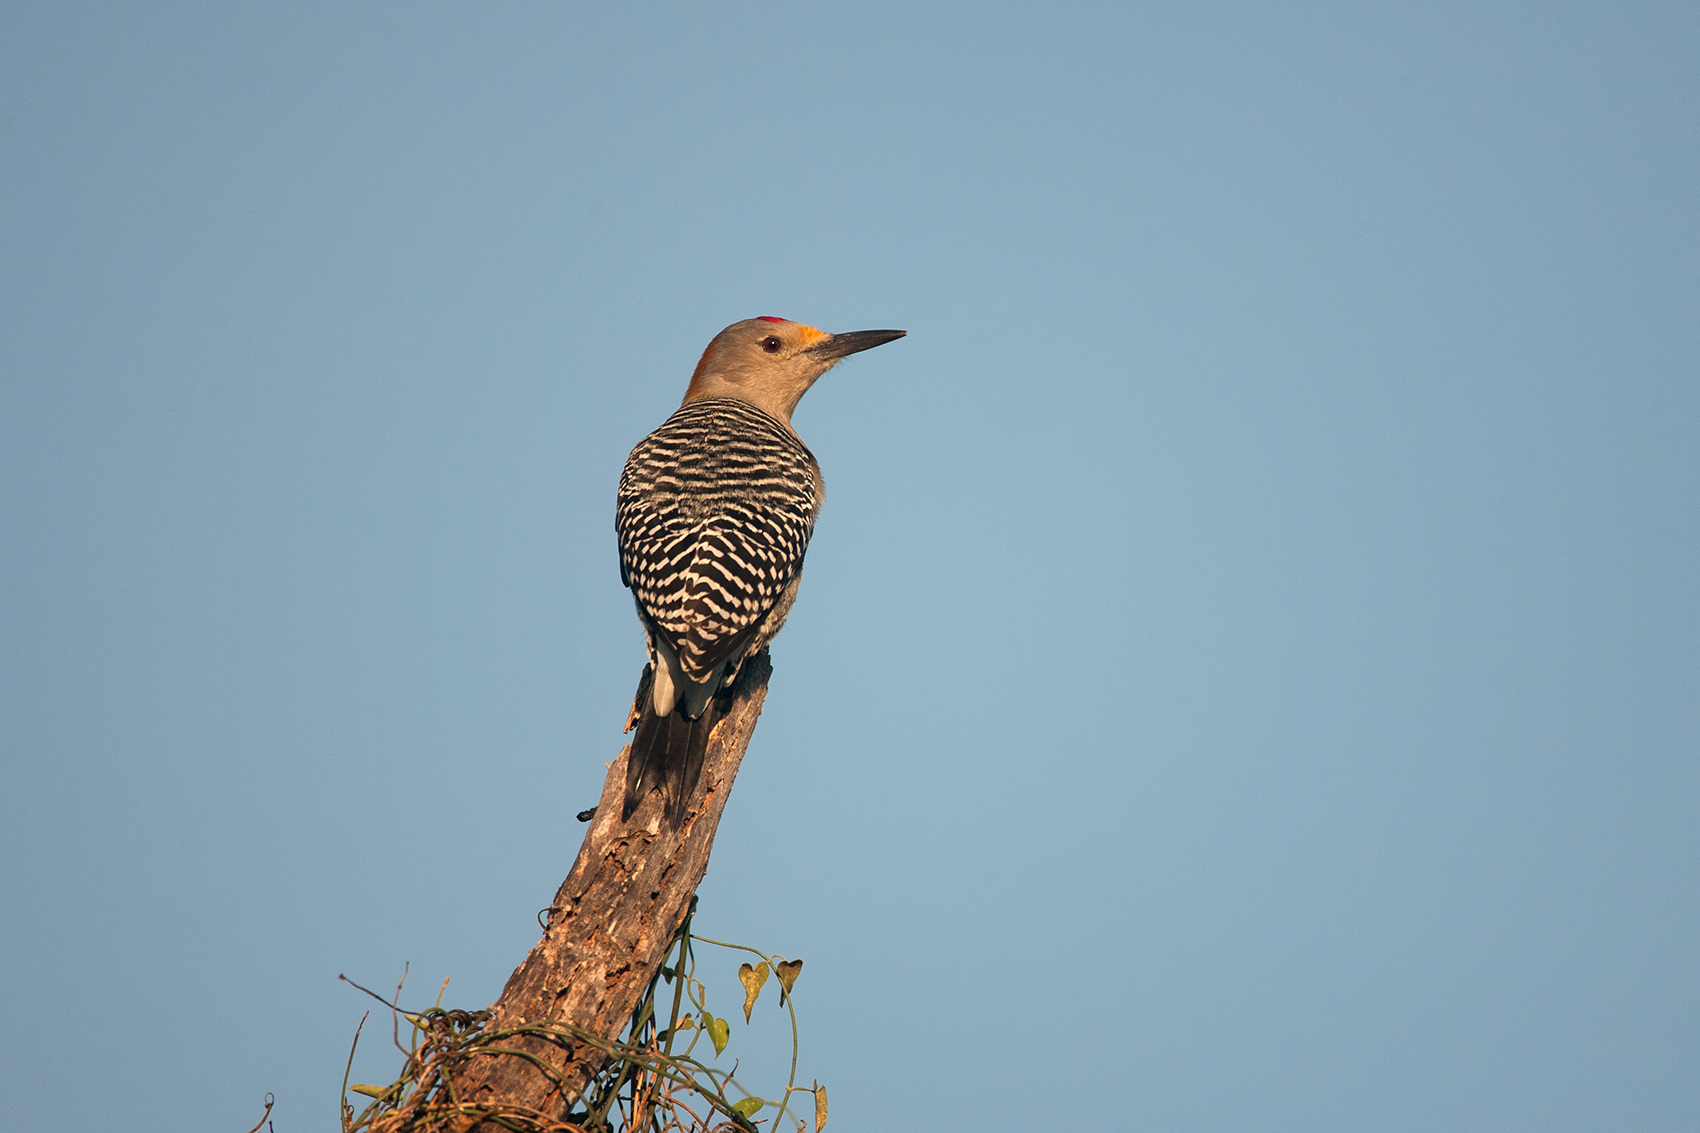 GOLDEN-FRONTED WOODPECKER - MCMULLEN COUNTY TX